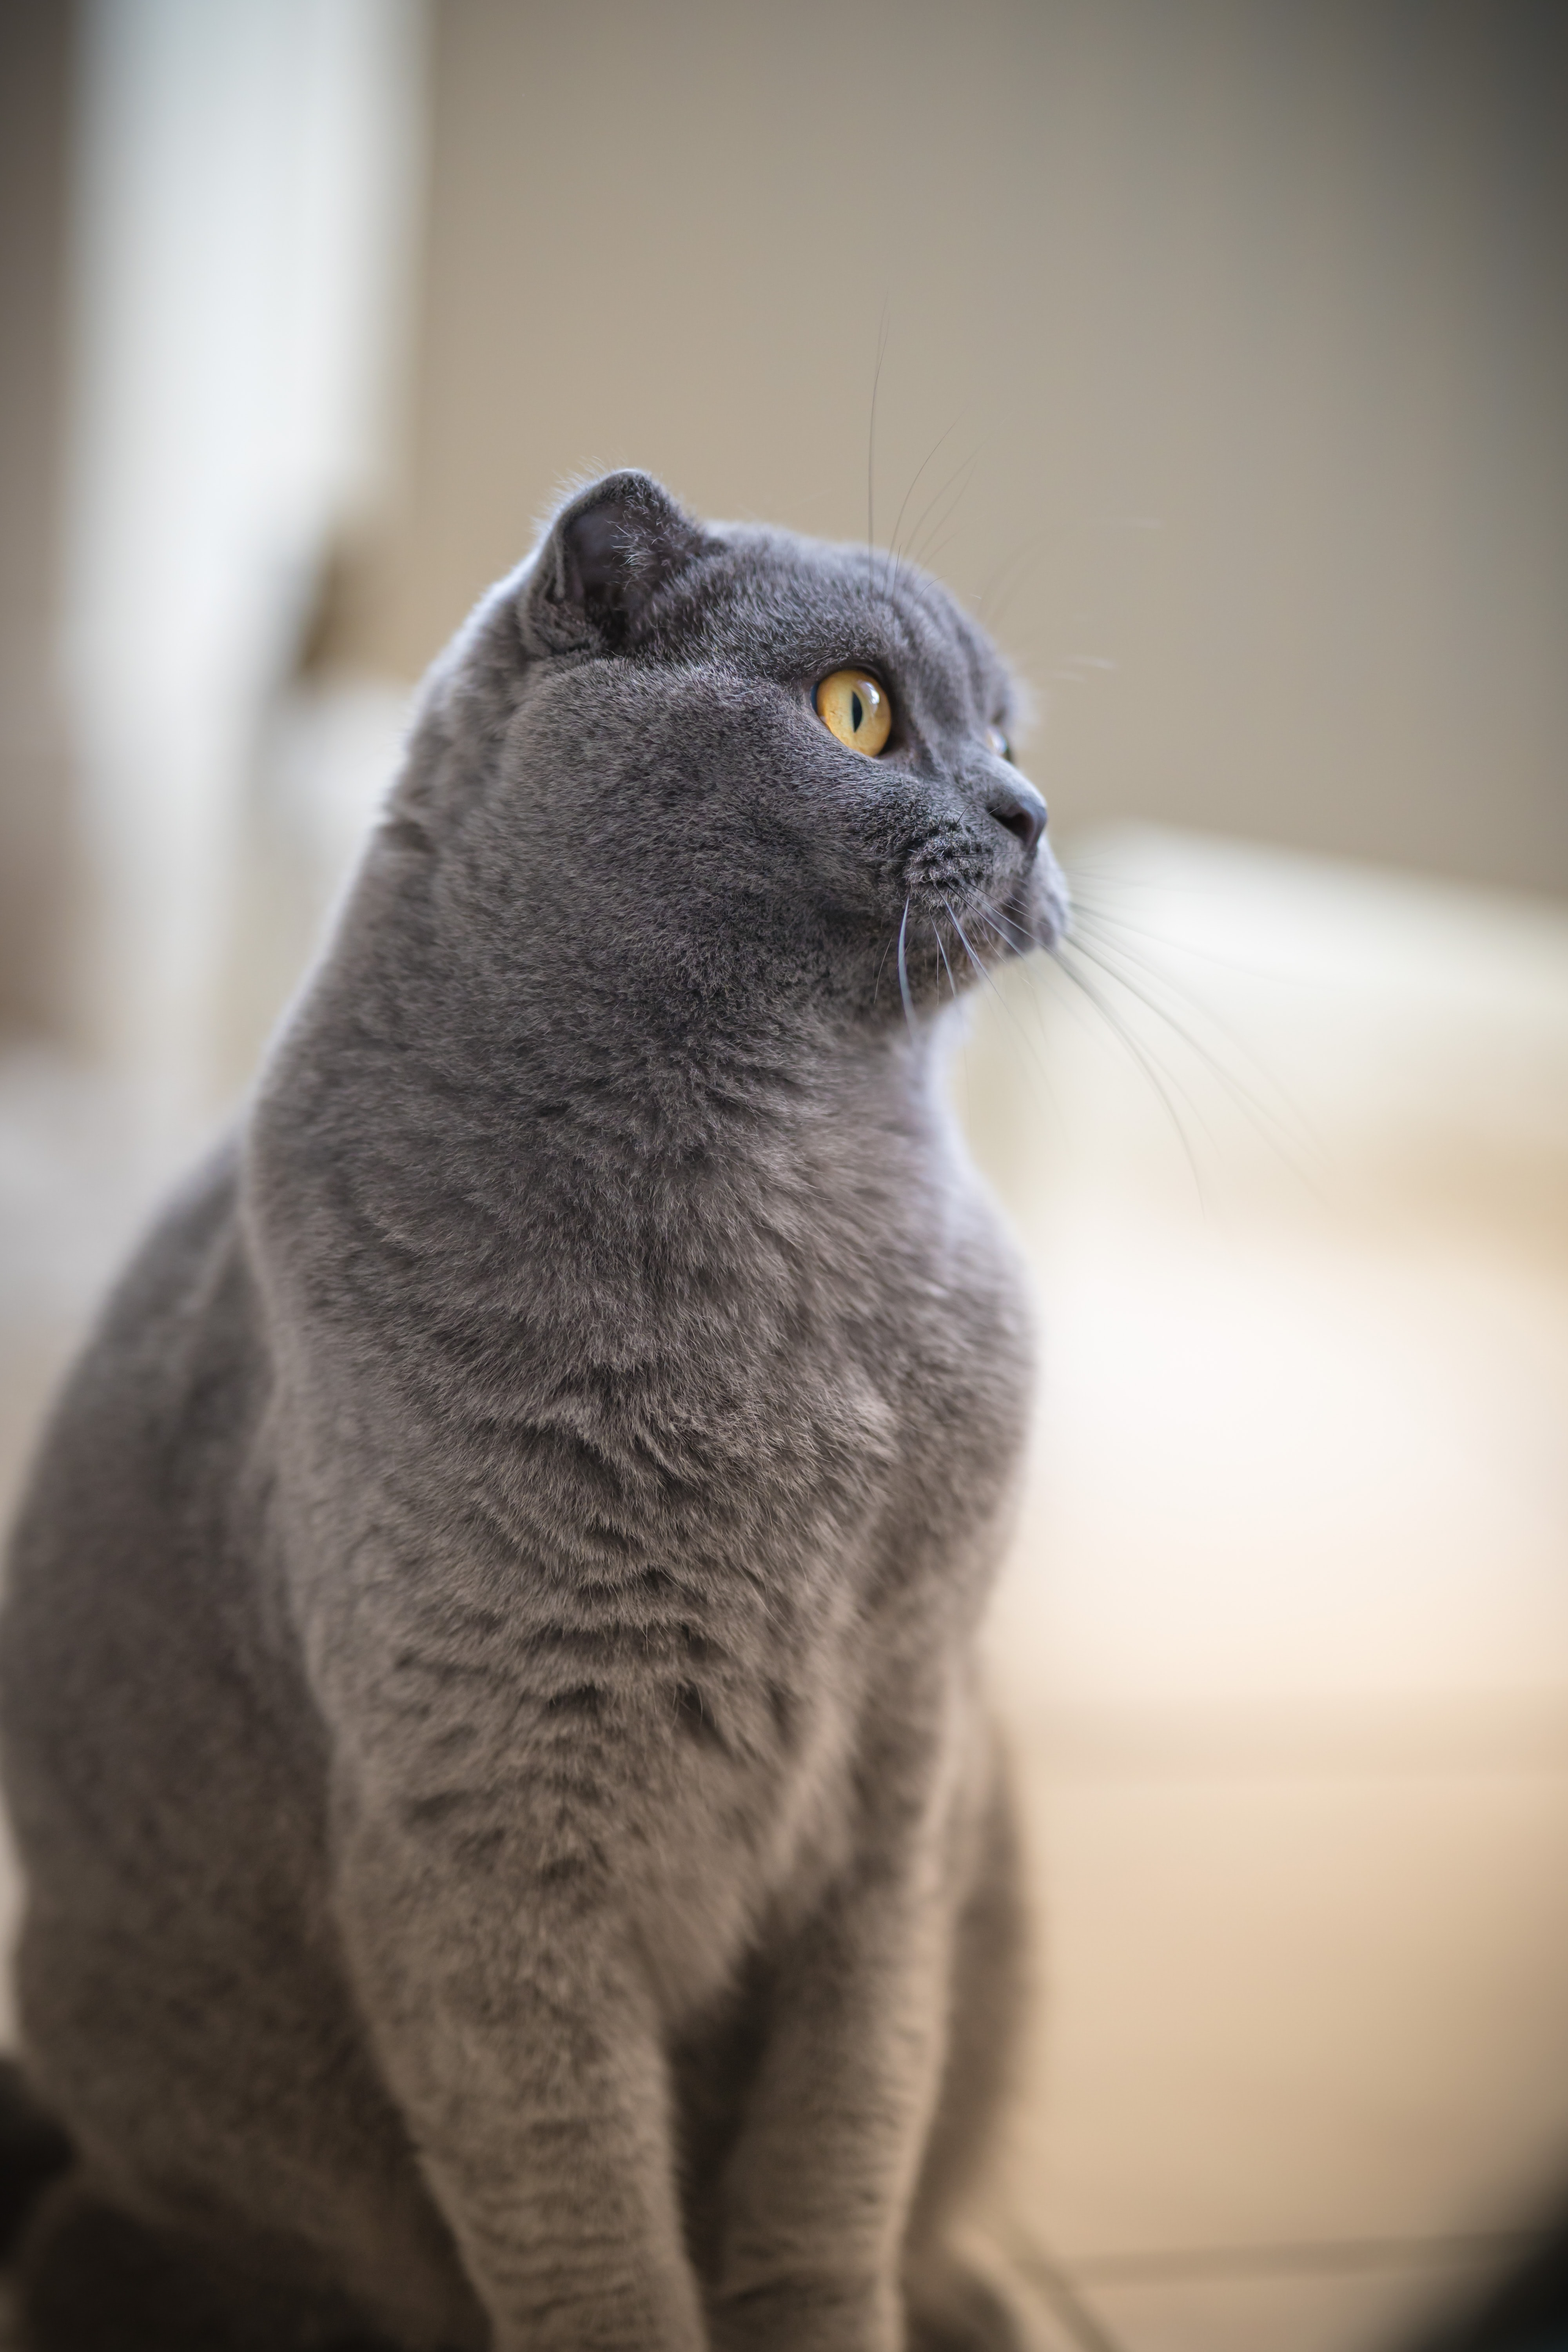 92612 download wallpaper Animals, British Cat, Cat, Pet, Sight, Opinion, Profile screensavers and pictures for free